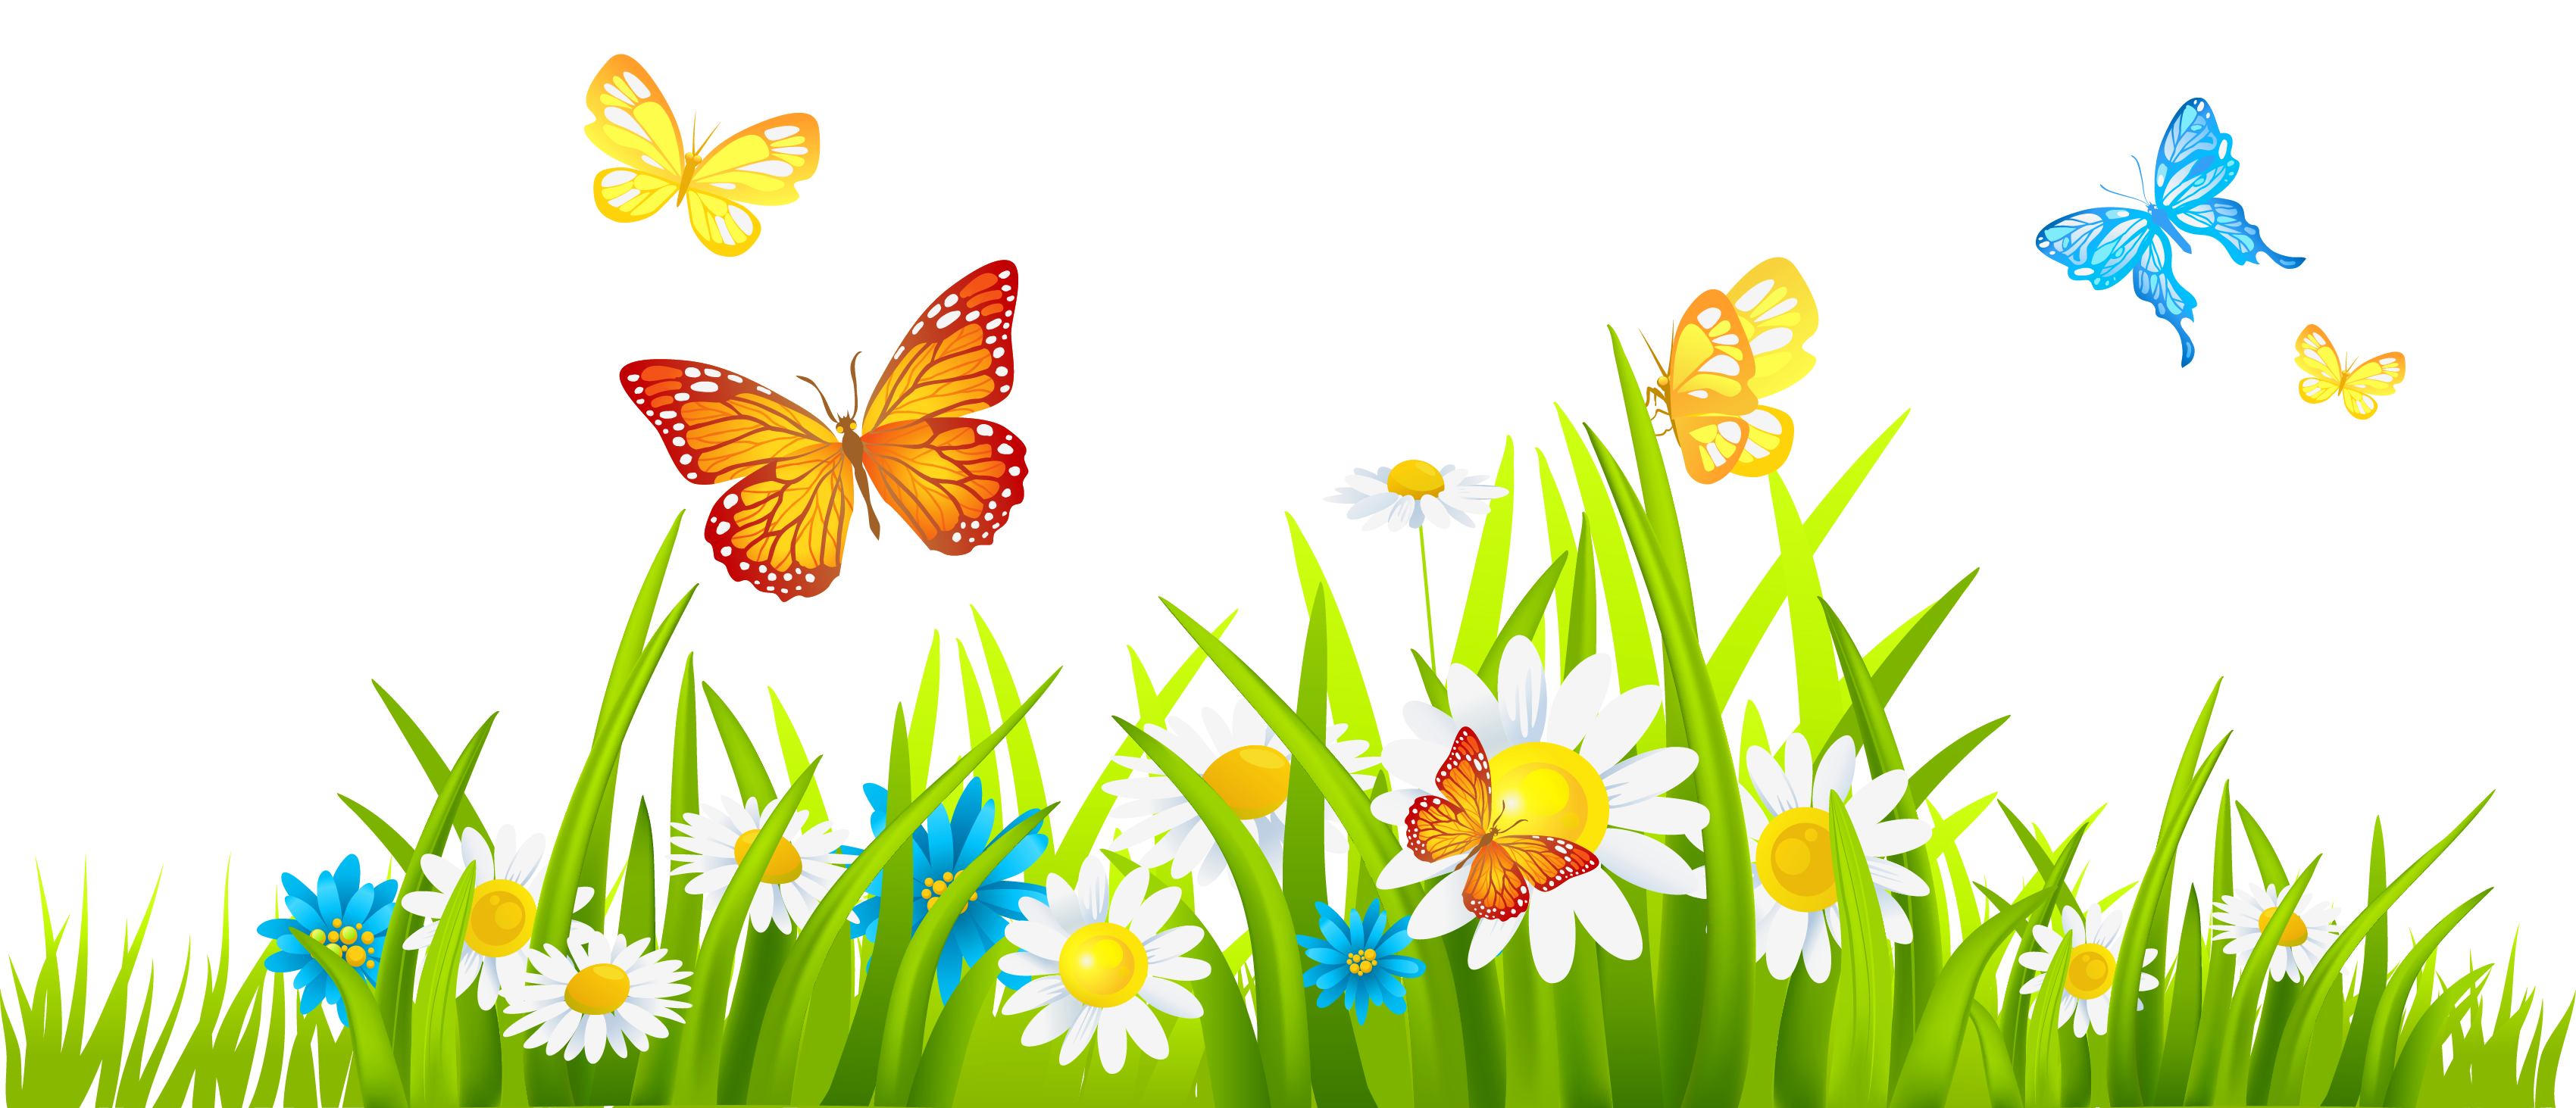 Spring Vector Art at GetDrawings.com.